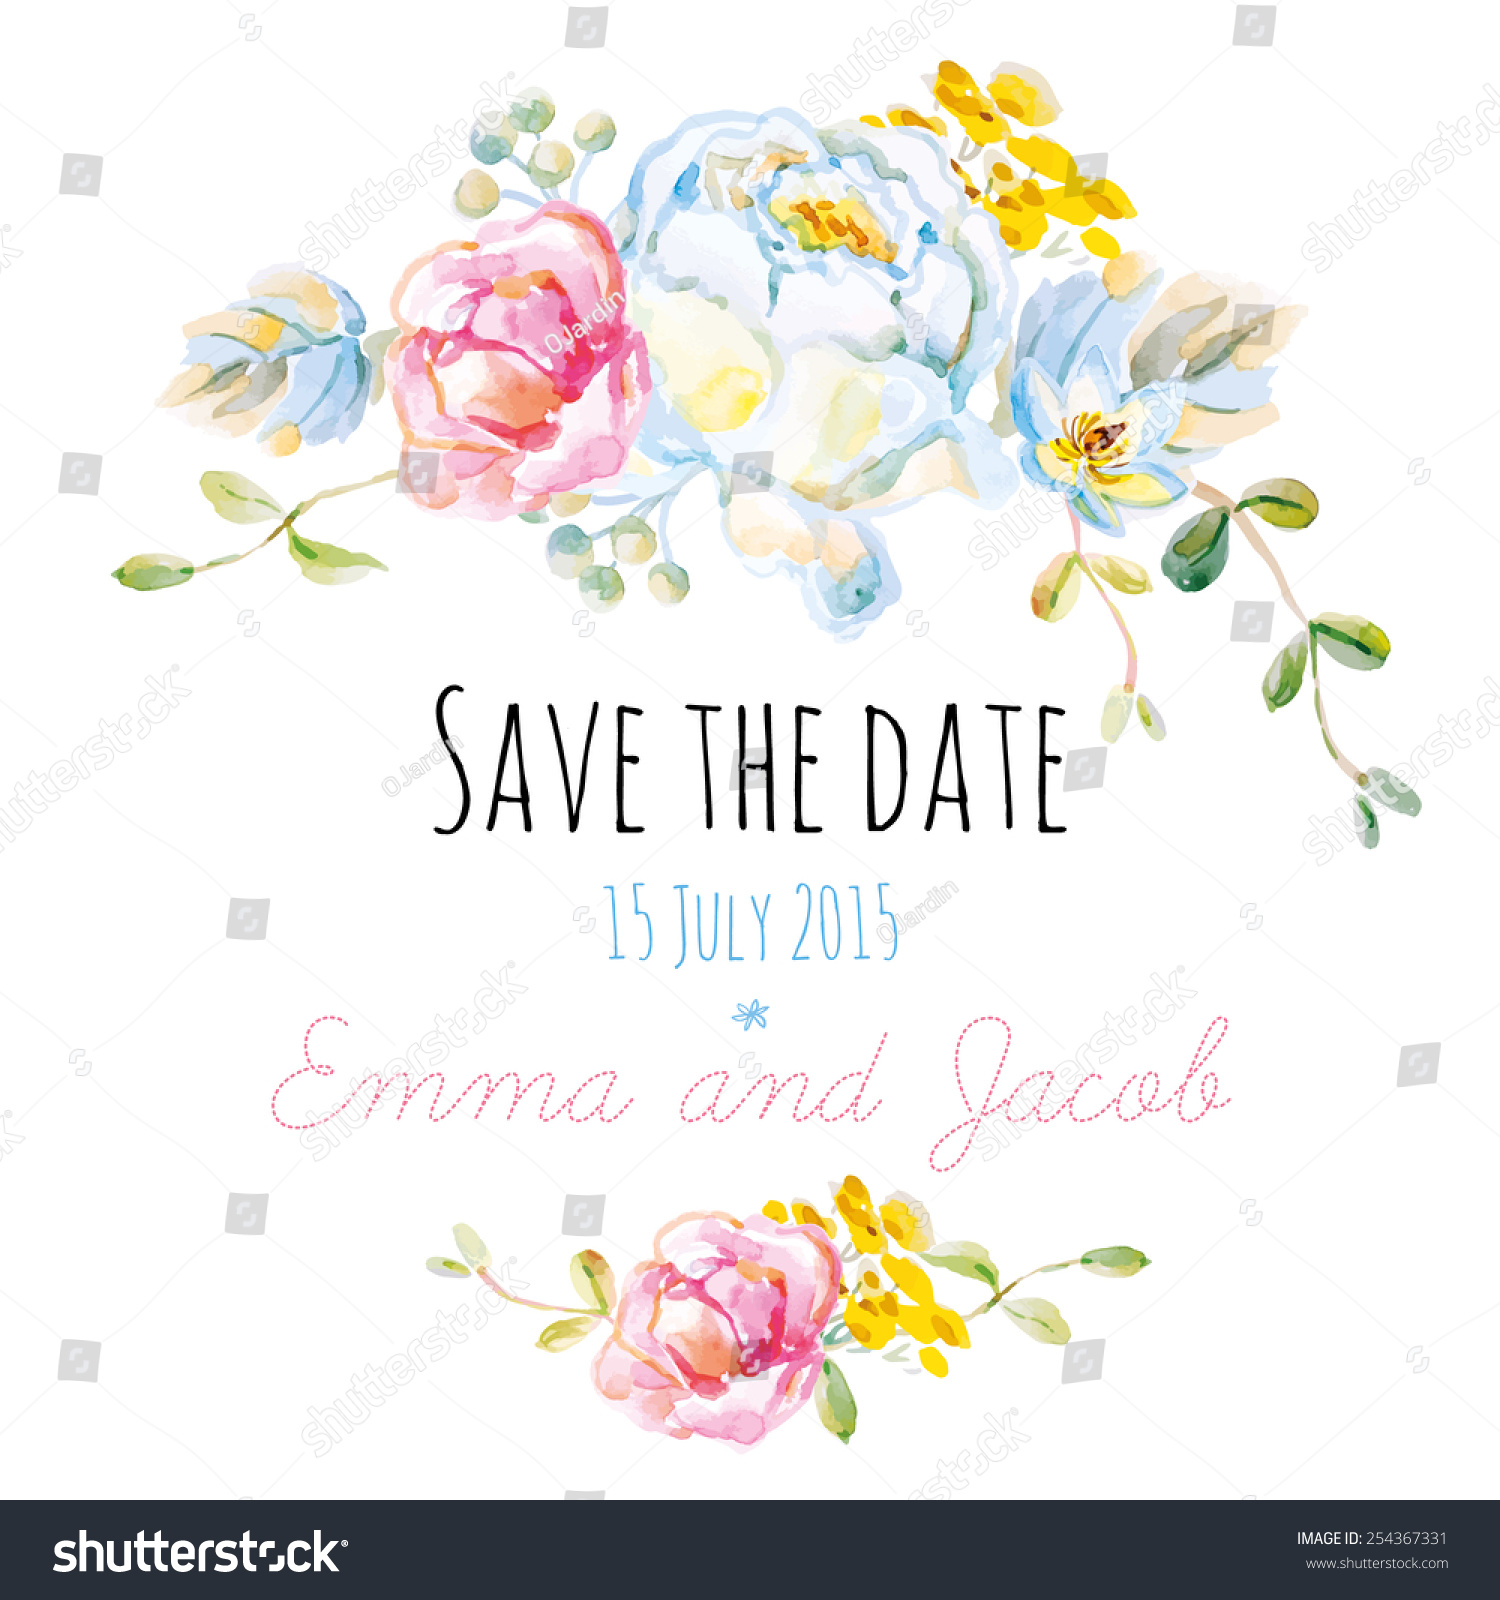 Save On Wedding Flowers: Save Date Wedding Invitation White Rose Stock Vector